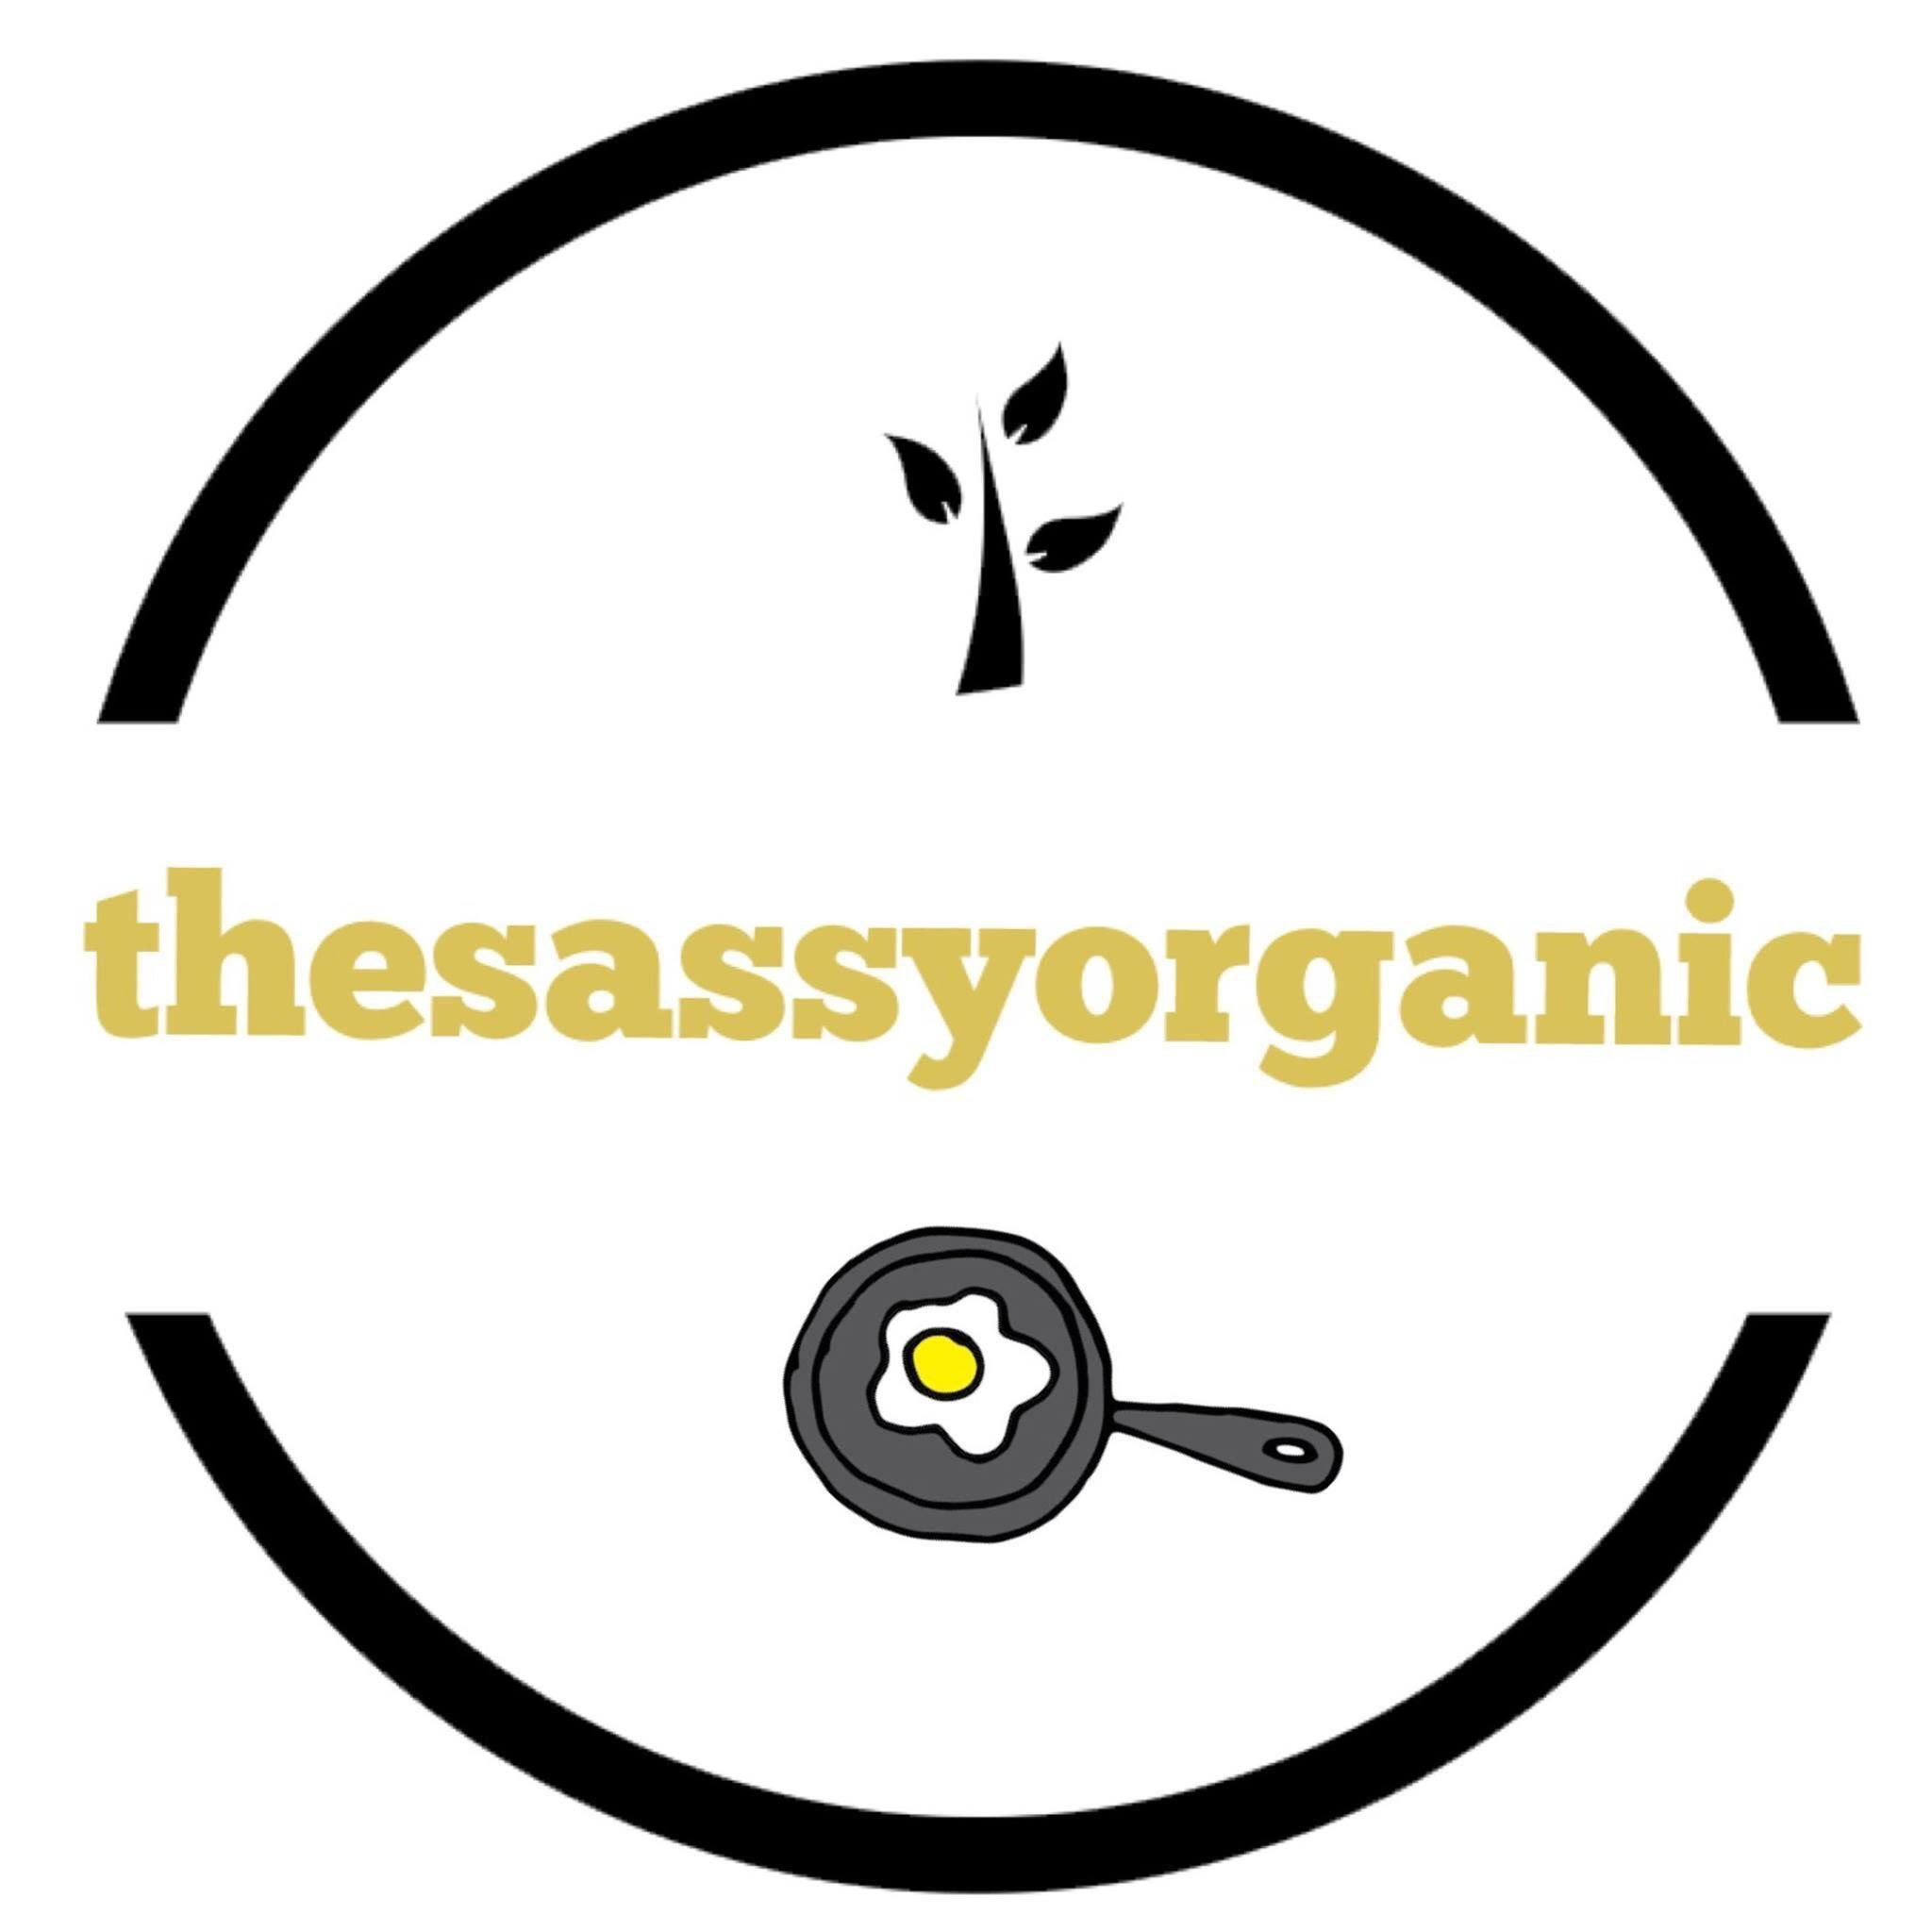 thesassyorganic